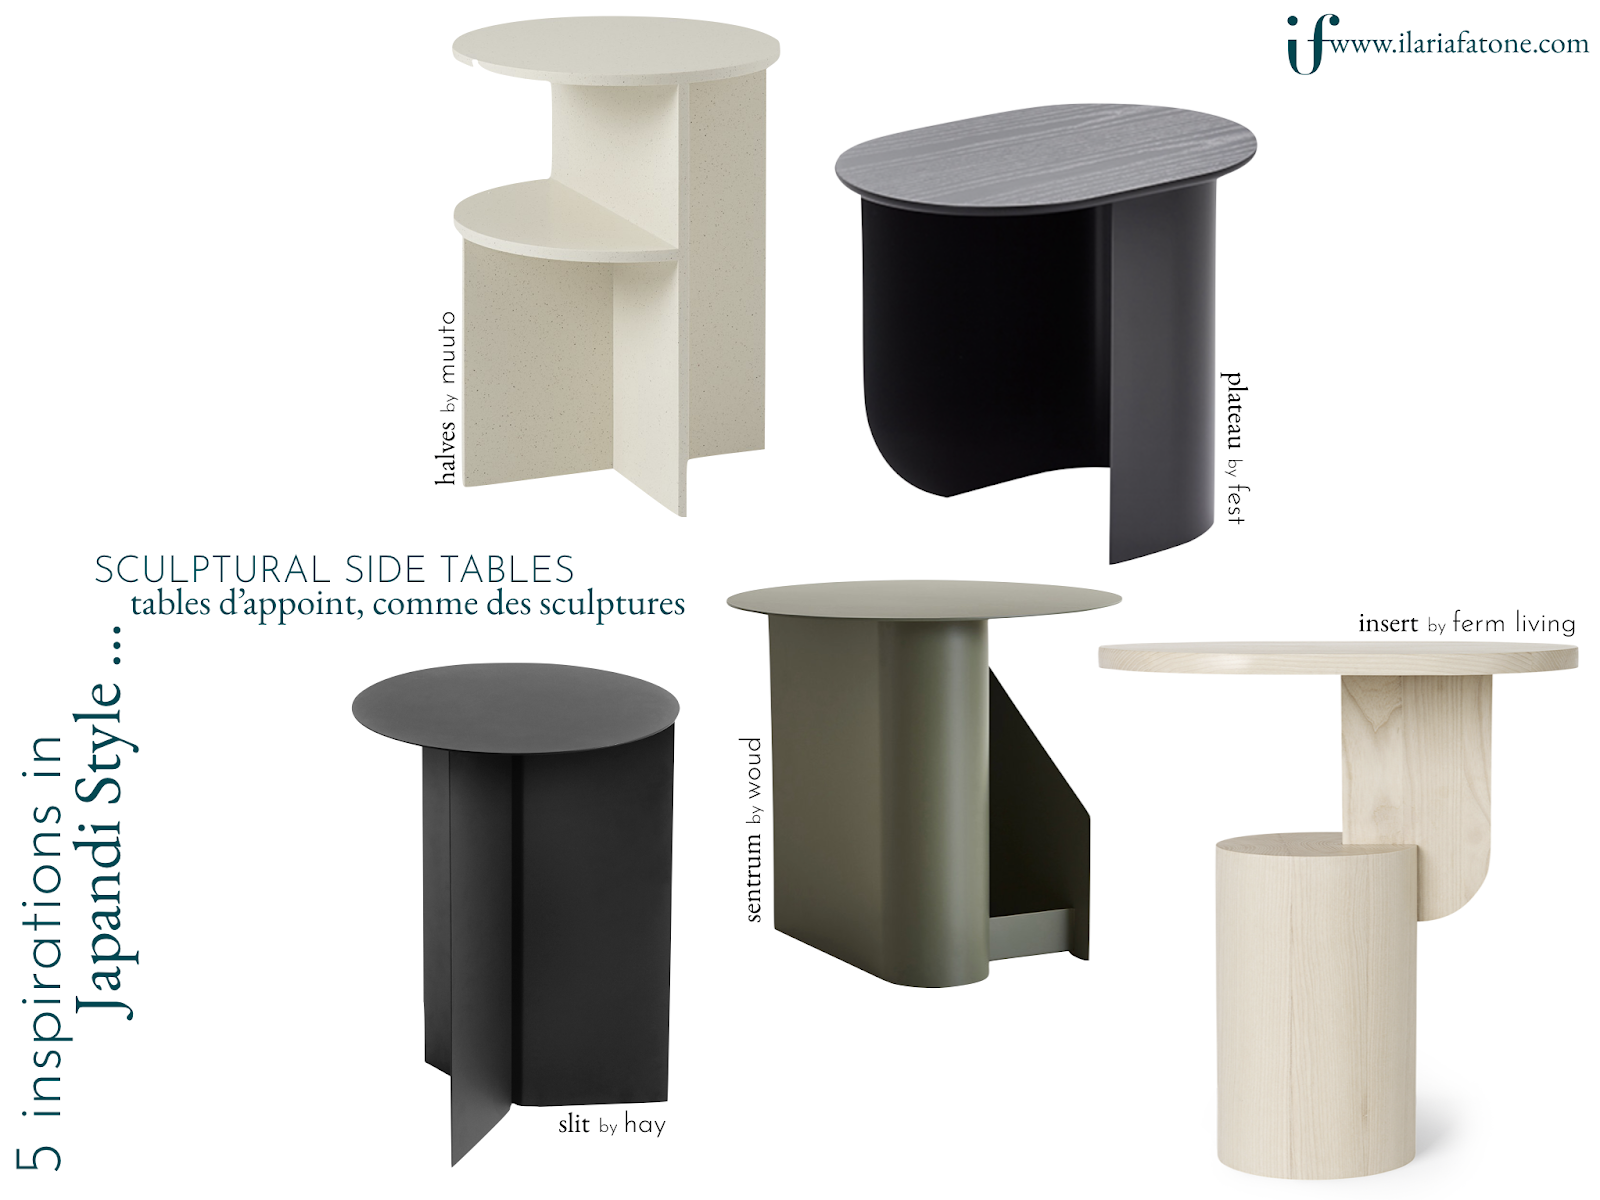 ilaria fatone - 5 japandi sculptural side tables